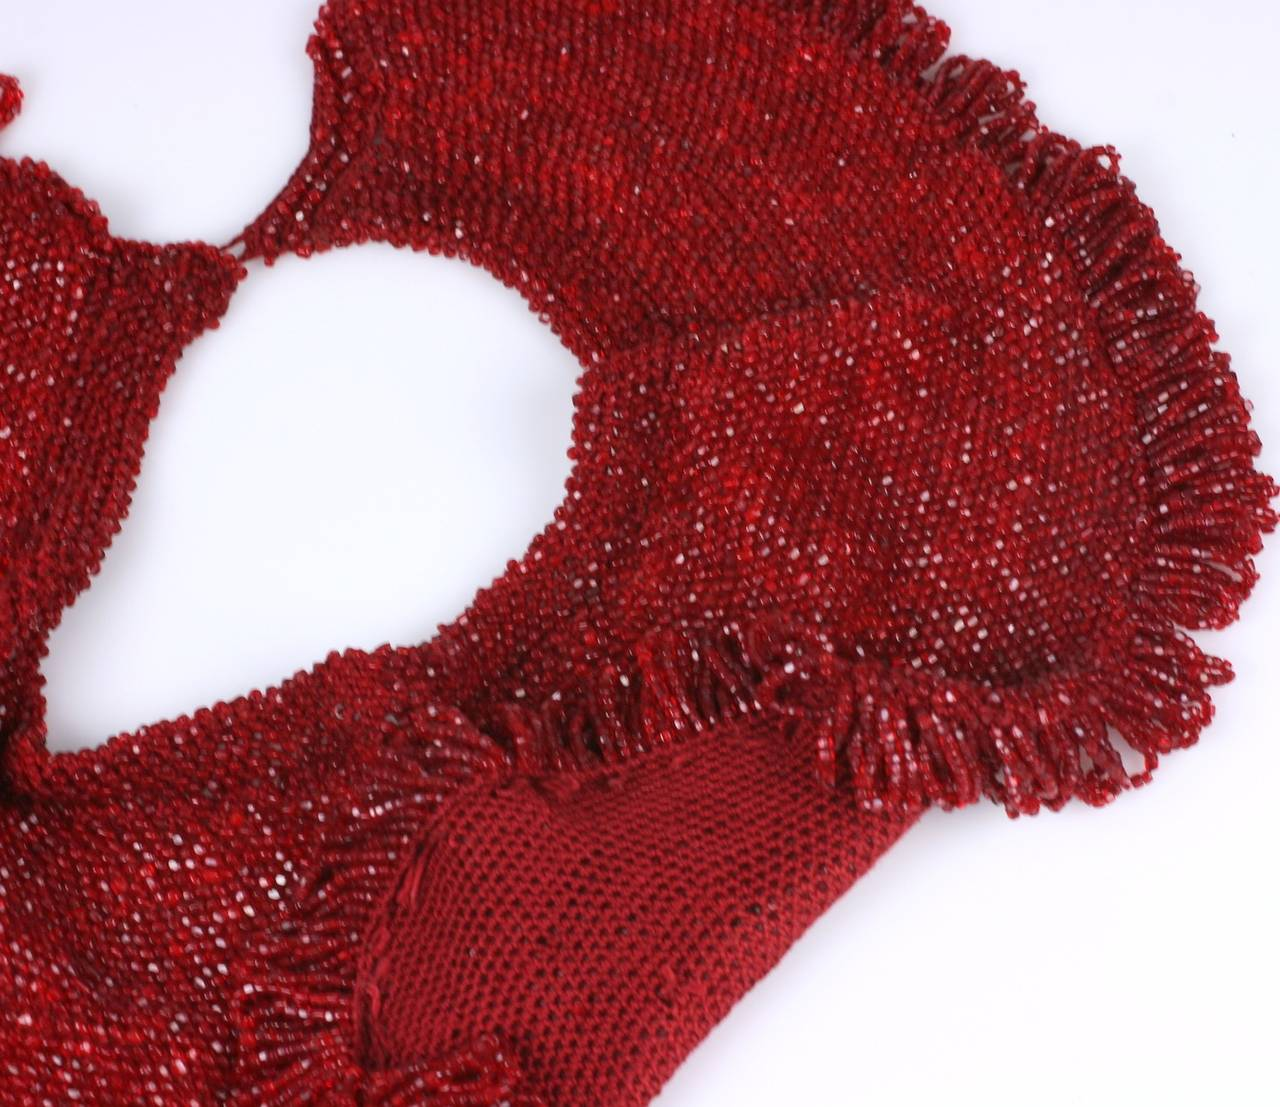 Charming hand crochet ruby glass beaded collar with looped edge trim. Can be worn in many configurations. 15.5